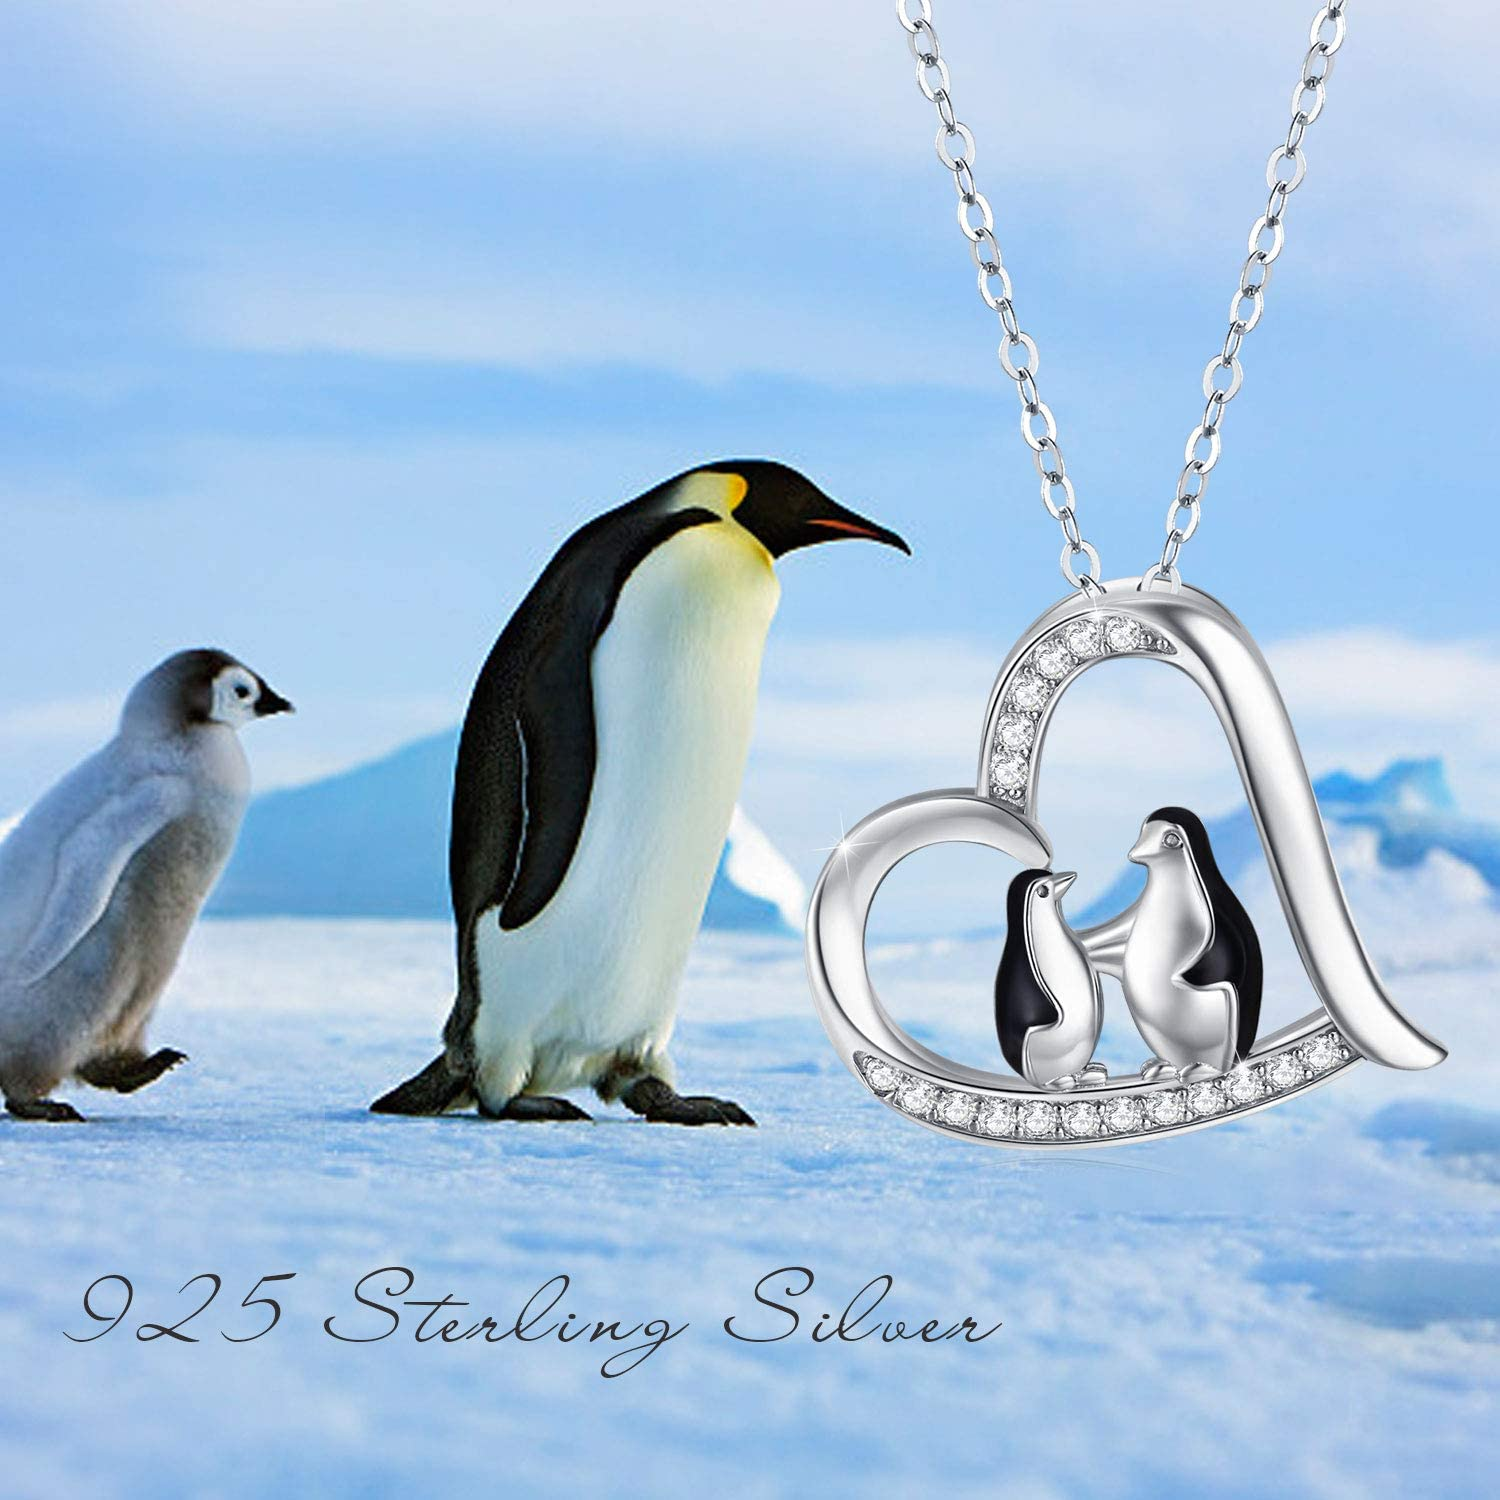 2 Silver Chain 18 Penguin Necklace 925 Sterling Silver Cute Animal Heart Pendant Necklace Mummy Gifts for Women